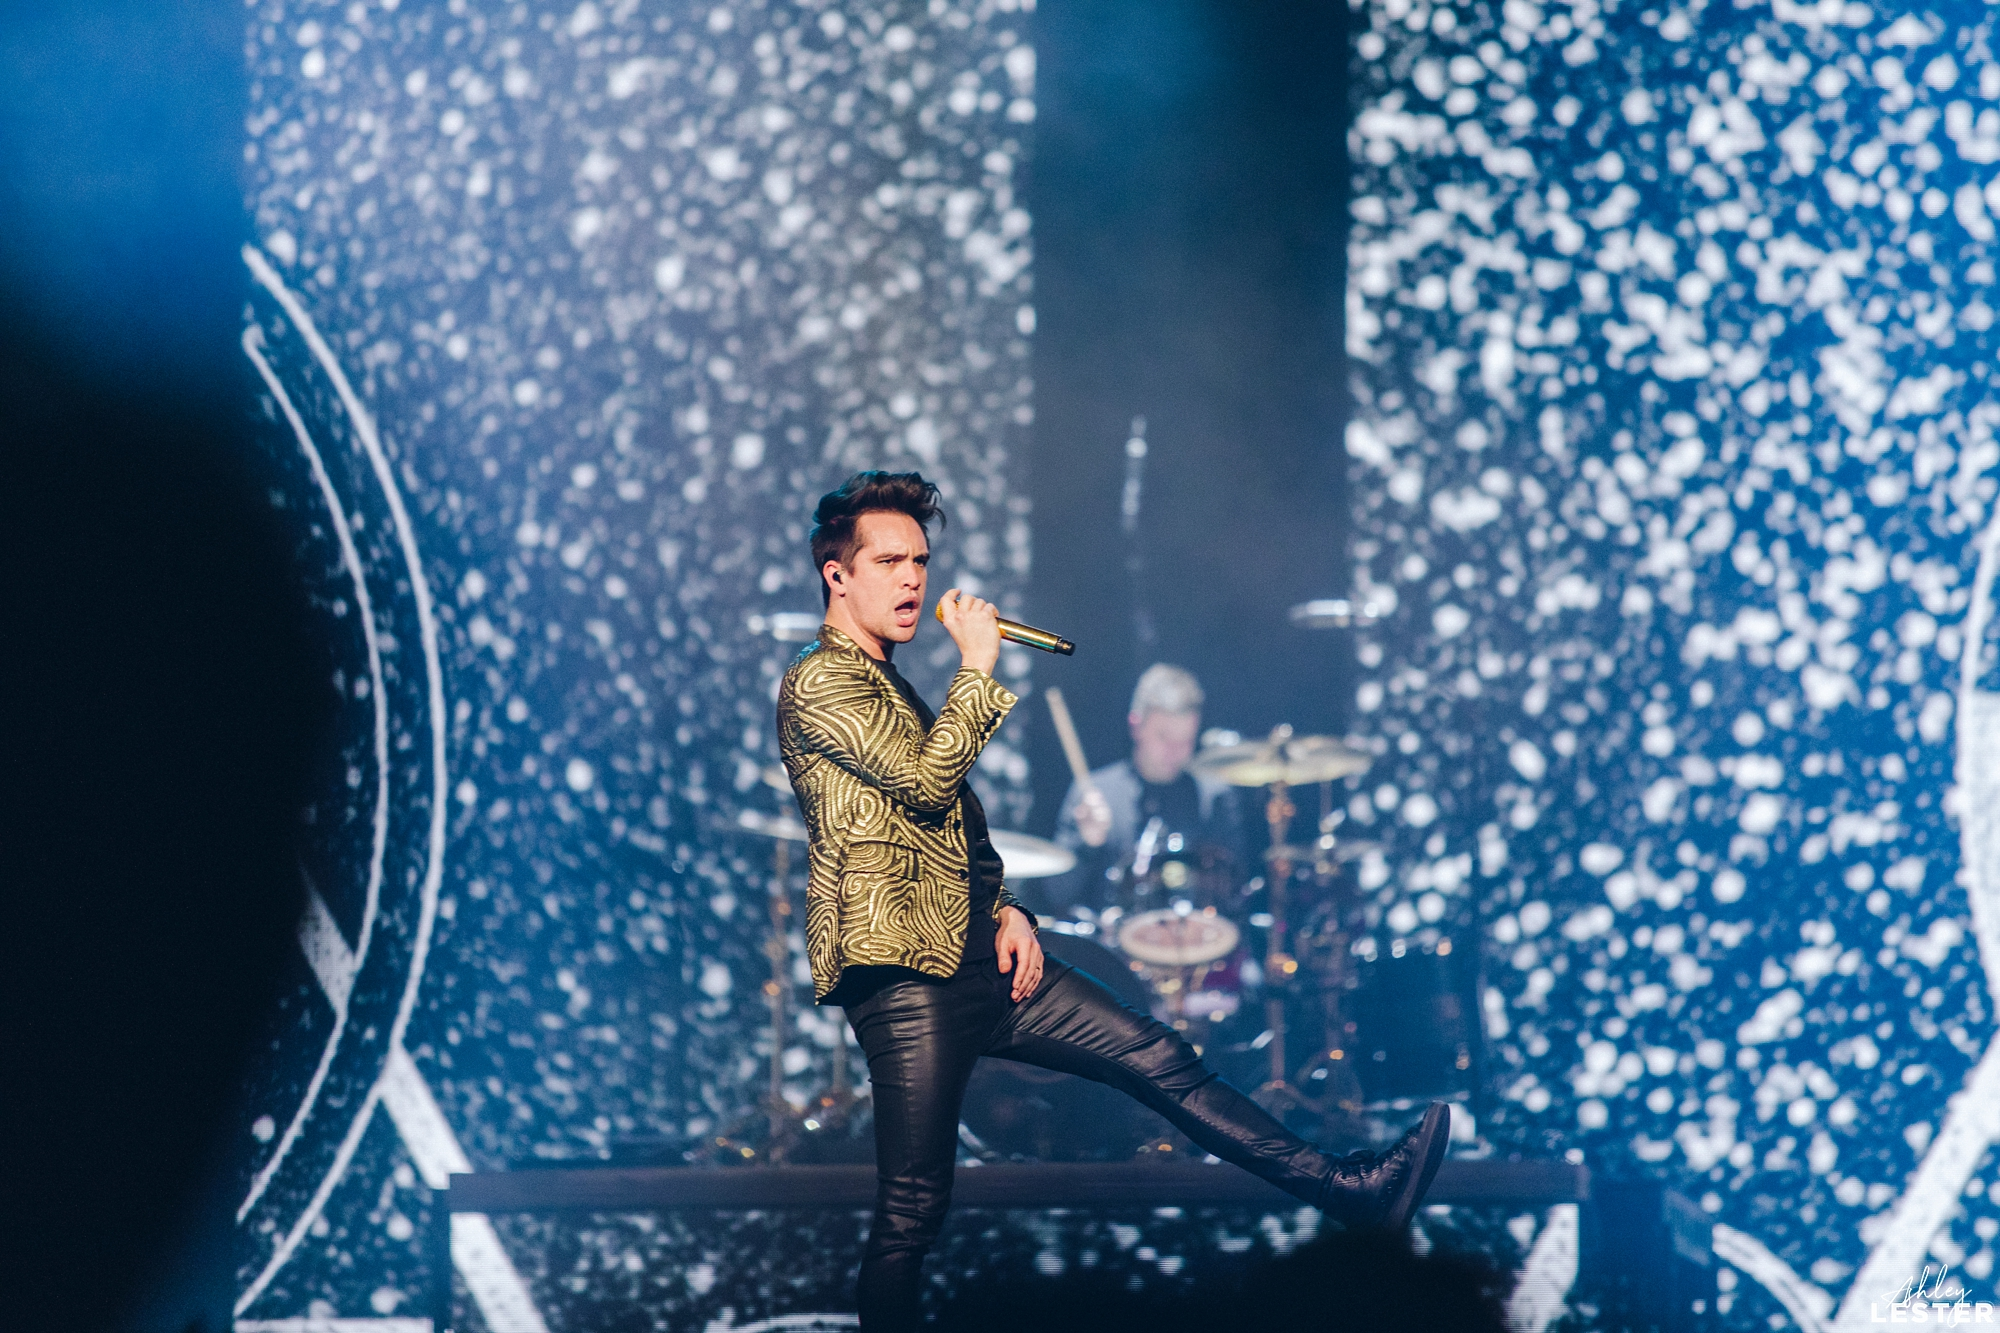 LiveMusic_Photographer_PanicattheDisco_0010.jpg